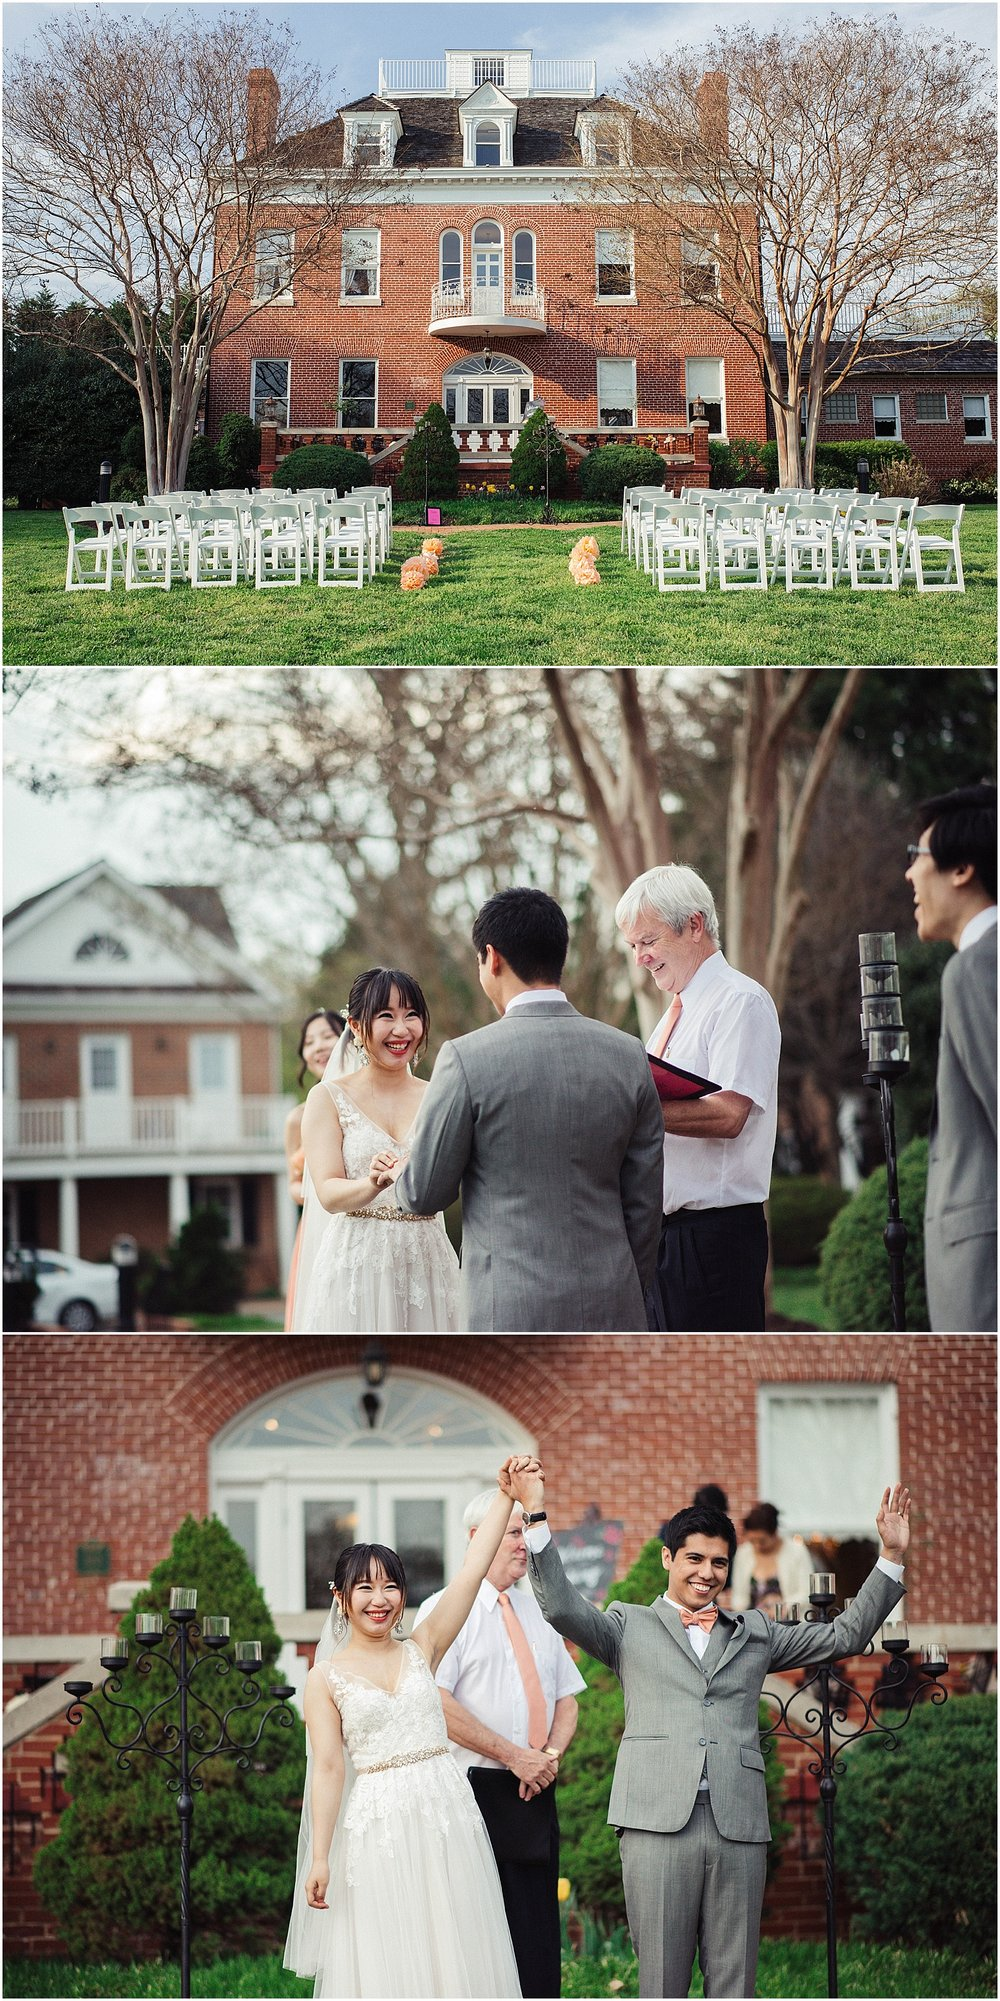 civil ceremony outdoors in the spring